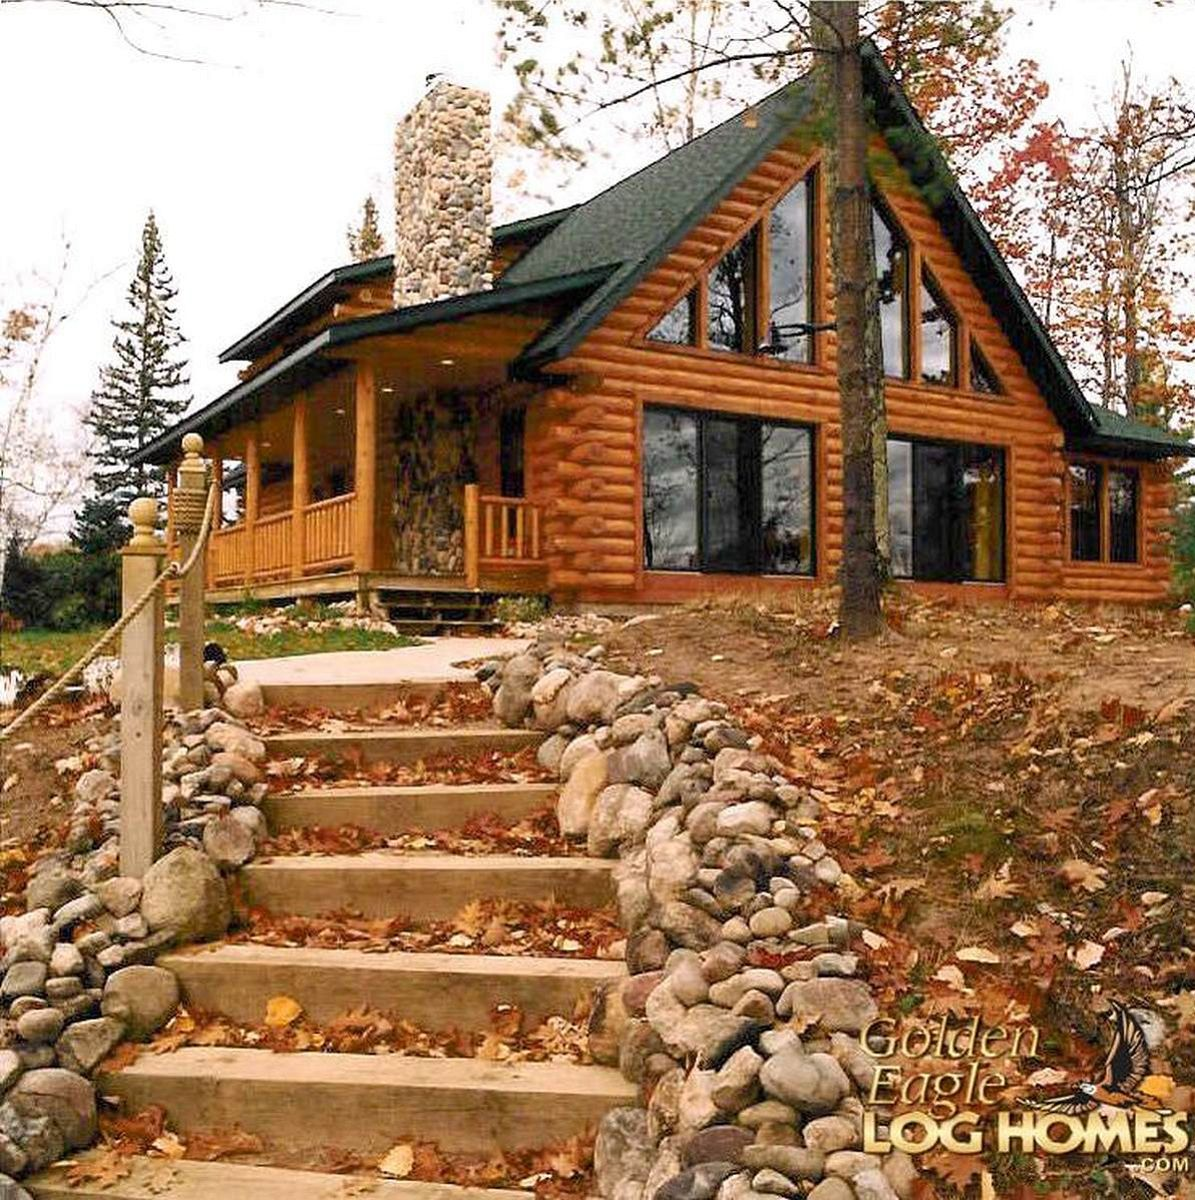 Log home by golden eagle log homes golden eagle log logs for Lodge home designs